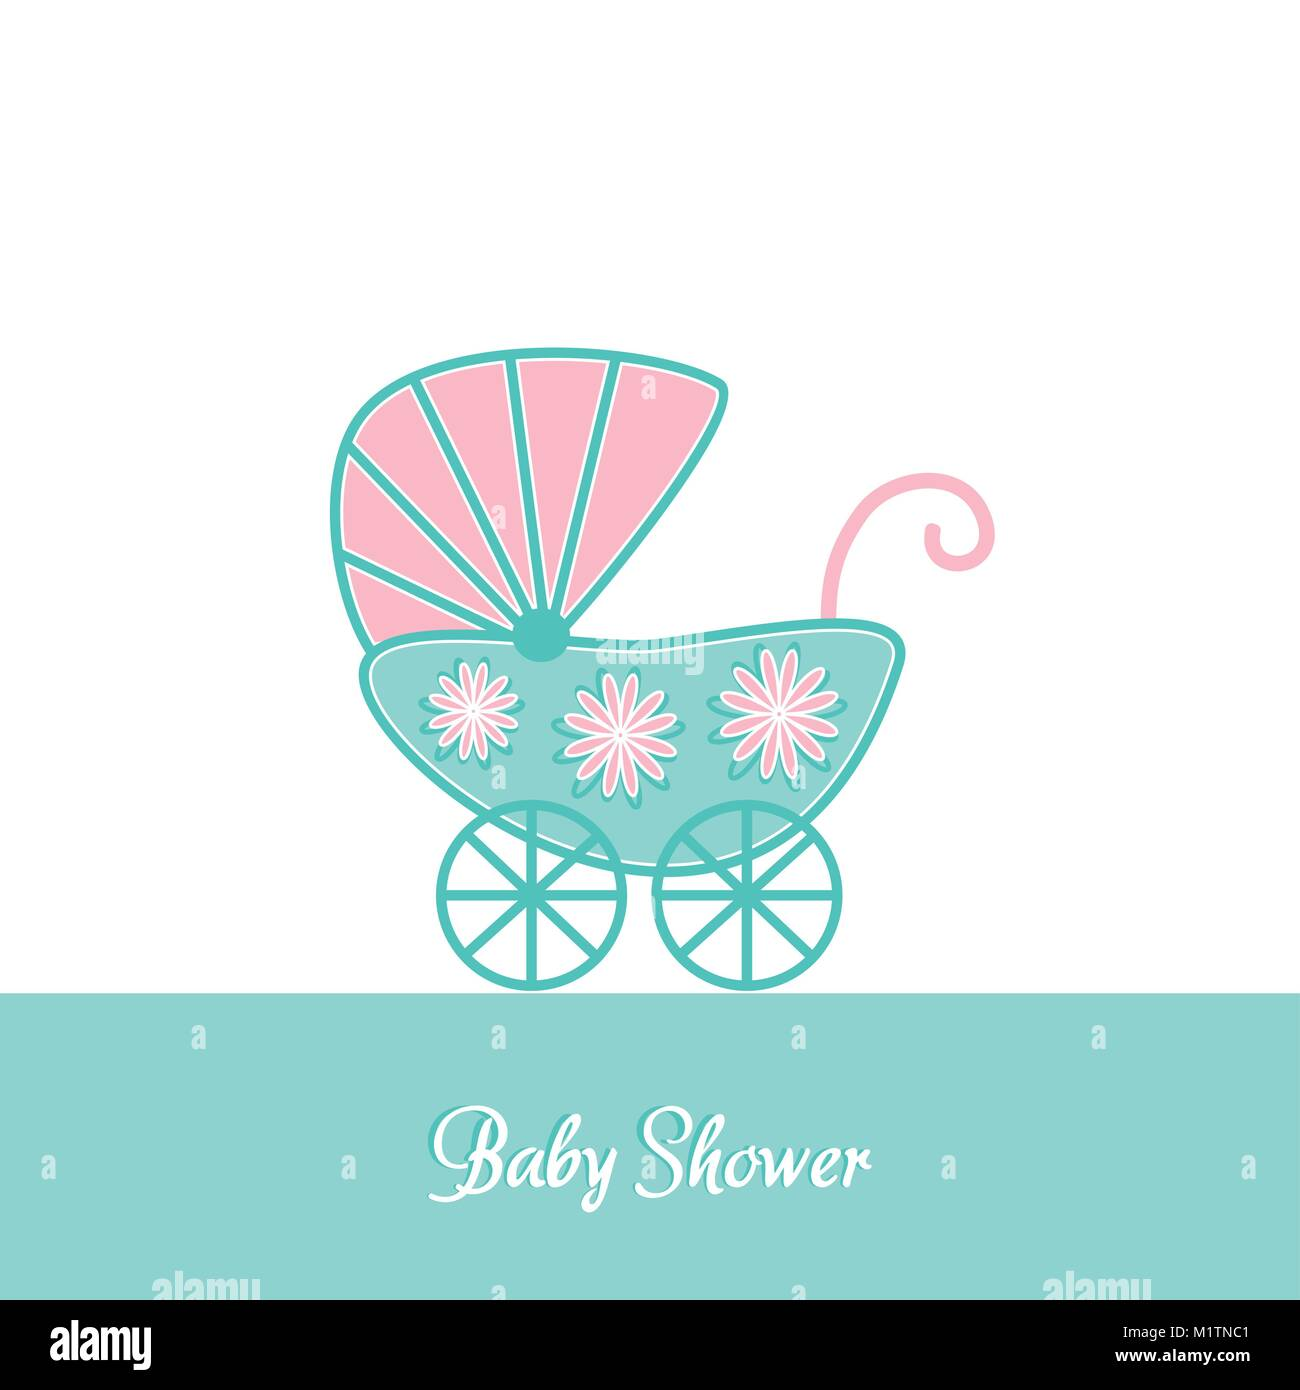 Baby Shower Vintage Invitation Card Template With Stroller